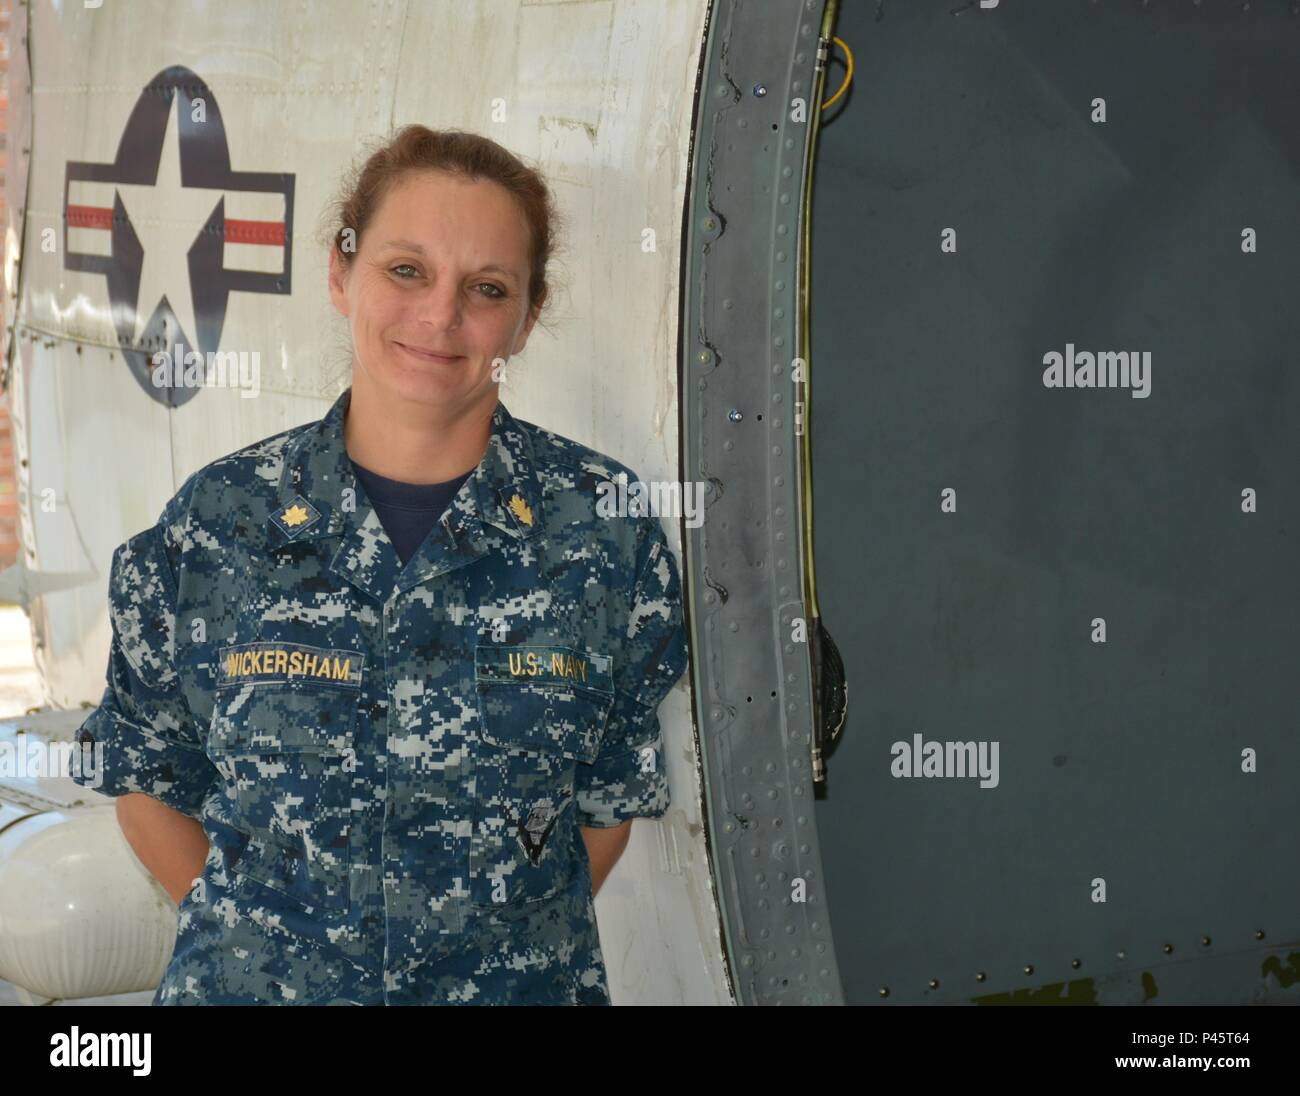 PENSACOLA, Fla. (June 8, 2016) Lt. Cmdr. Malissa Wickersham, the Flight Medic Course (FMC) department head at the Naval Aerospace Medical Institution (NAMI) stands with one of the FMC's simulation airframes. NAMI launched the Navy's first Flight Medic Course July 11. (U.S. Navy Photo by Hospital Corpsman 2nd Class Matthew Clutter/Released) - Stock Image